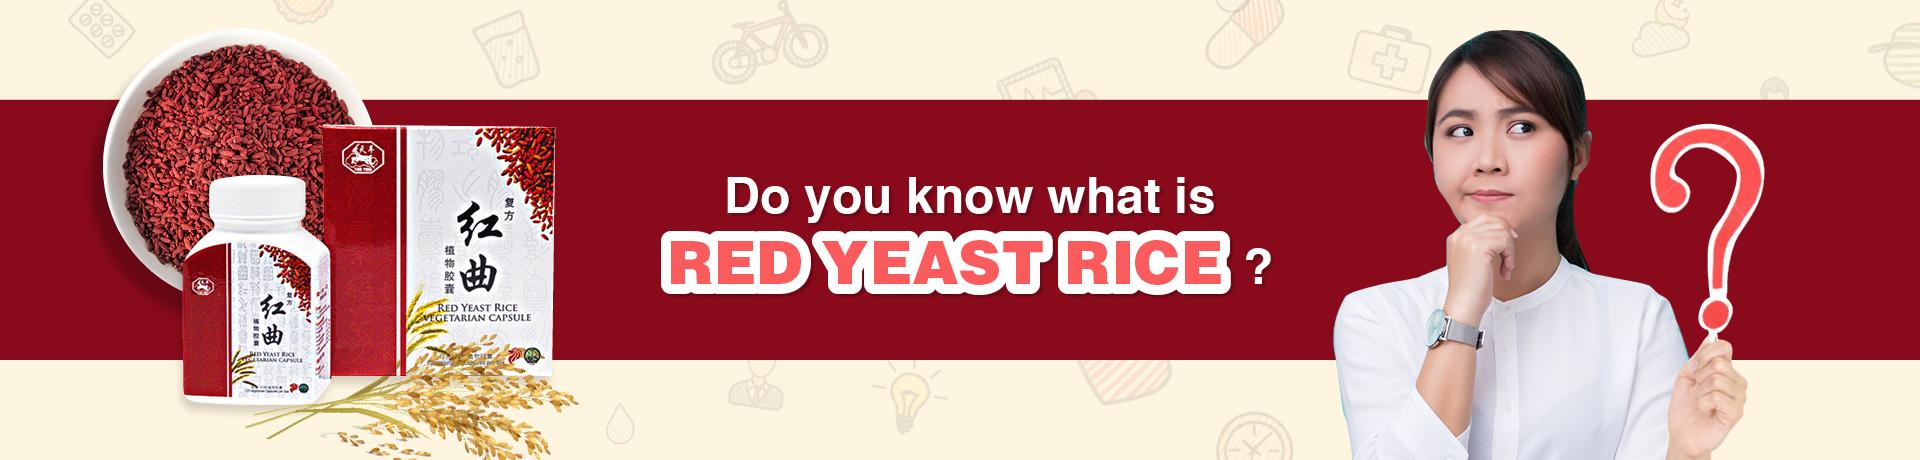 HHT_Sliding banner_red yeast_1920x460px_eng